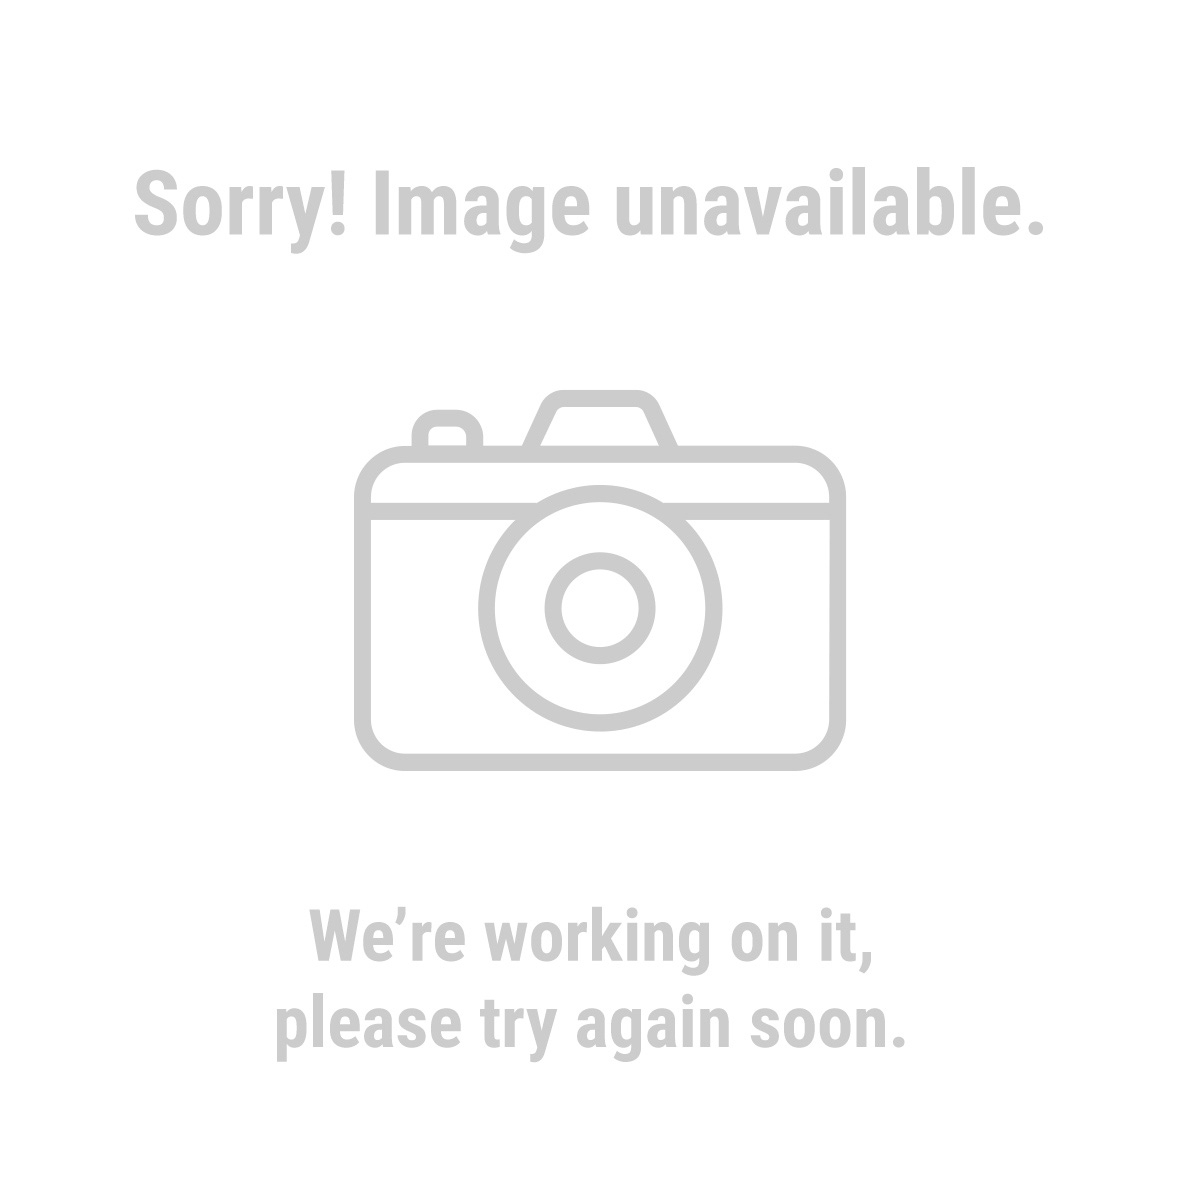 61648 5 In. Heavy Duty Swivel Caster